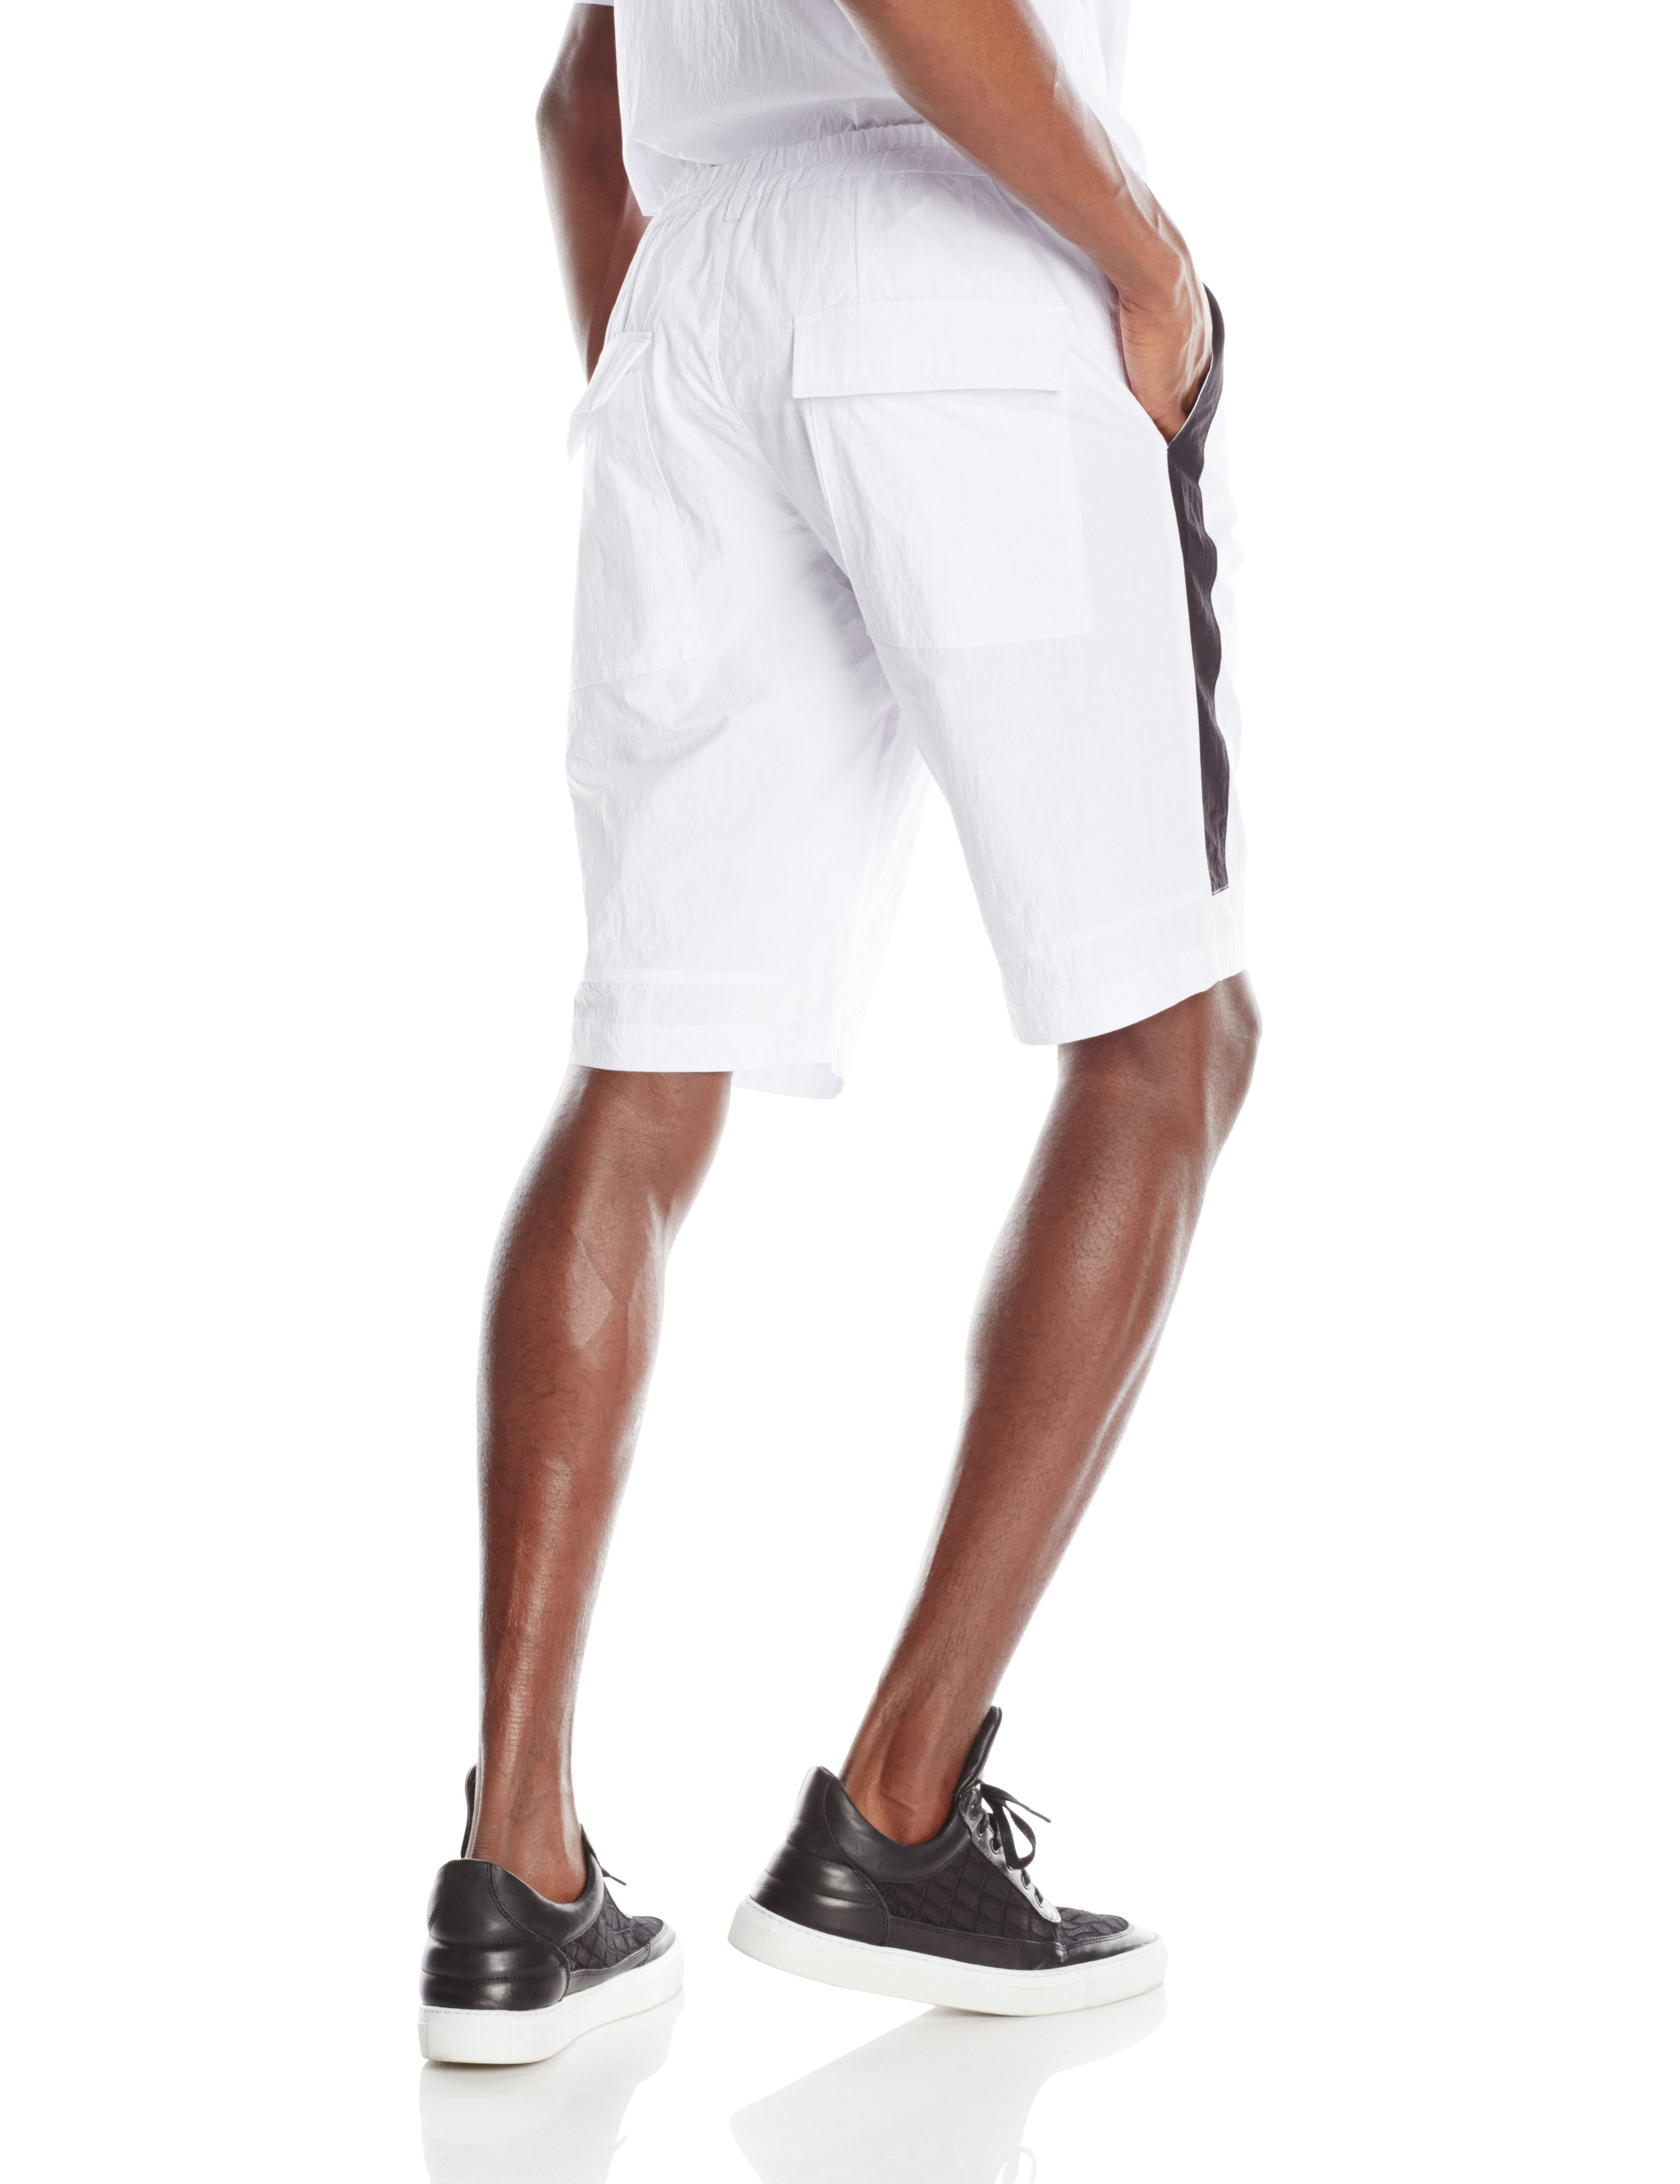 BACK-EPSILON SHORT WHITE BLACK TRIM.0125